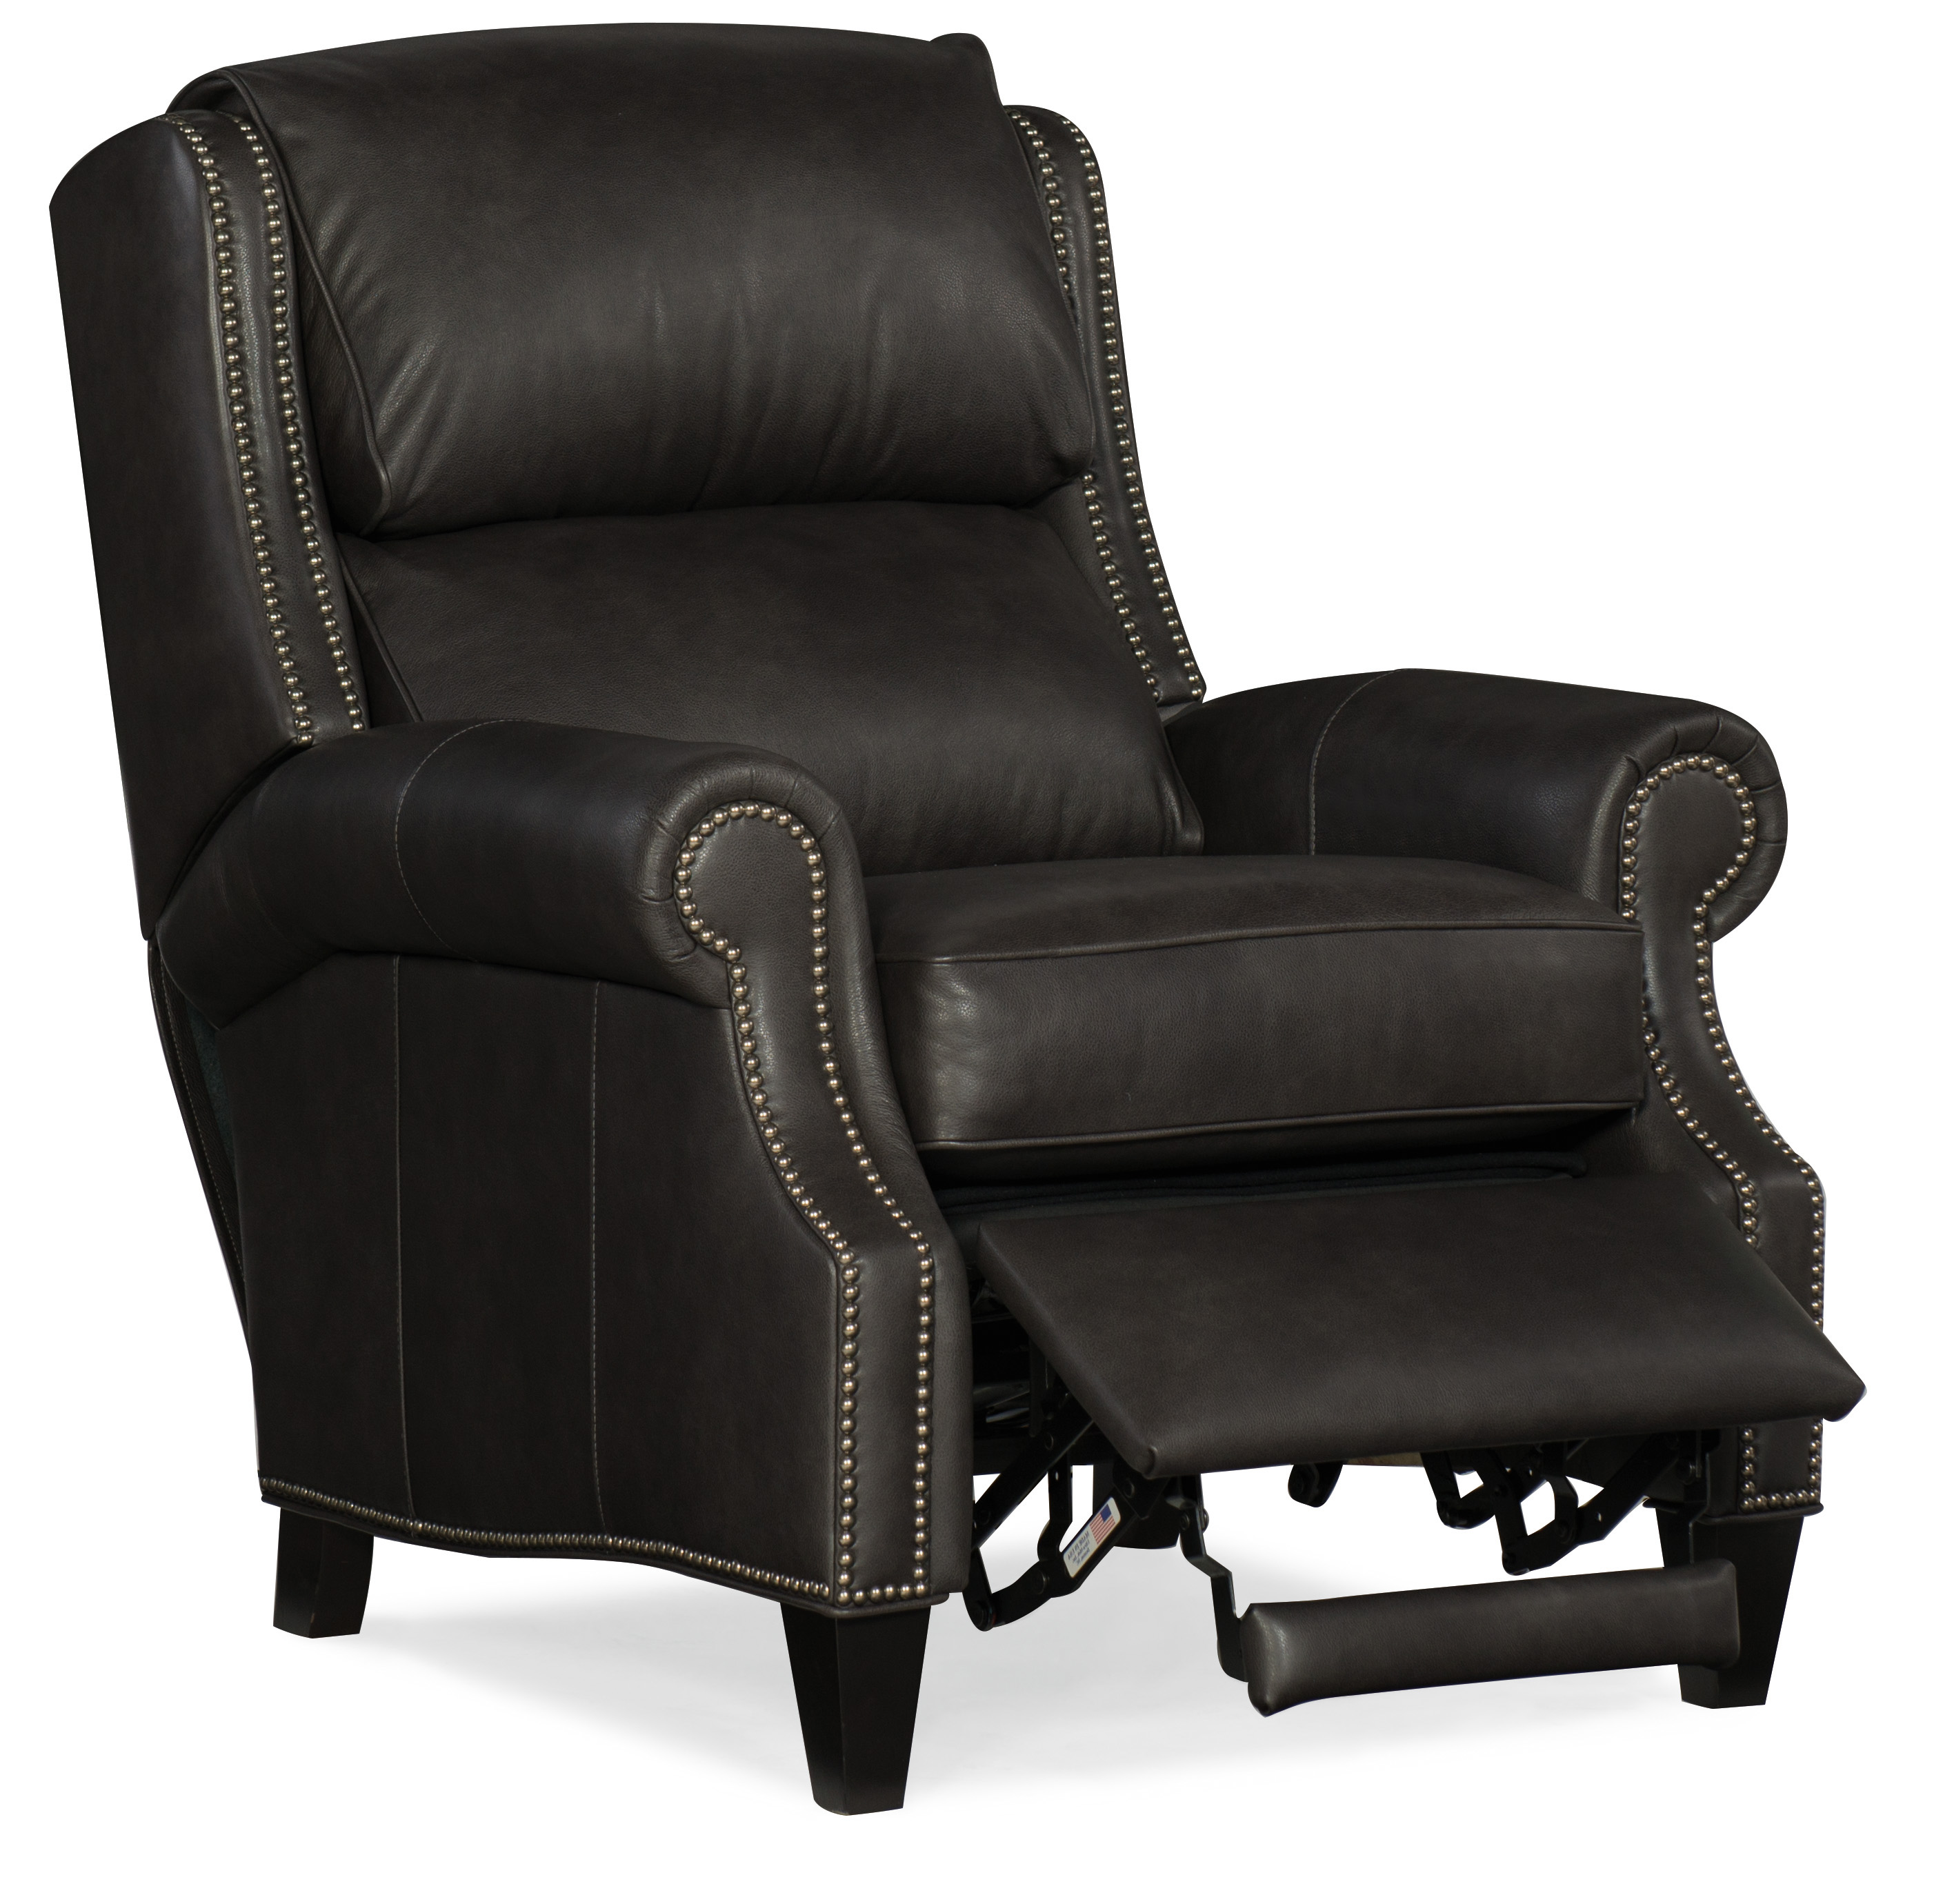 Huss Leather Recliner On Sale By Bradington Young